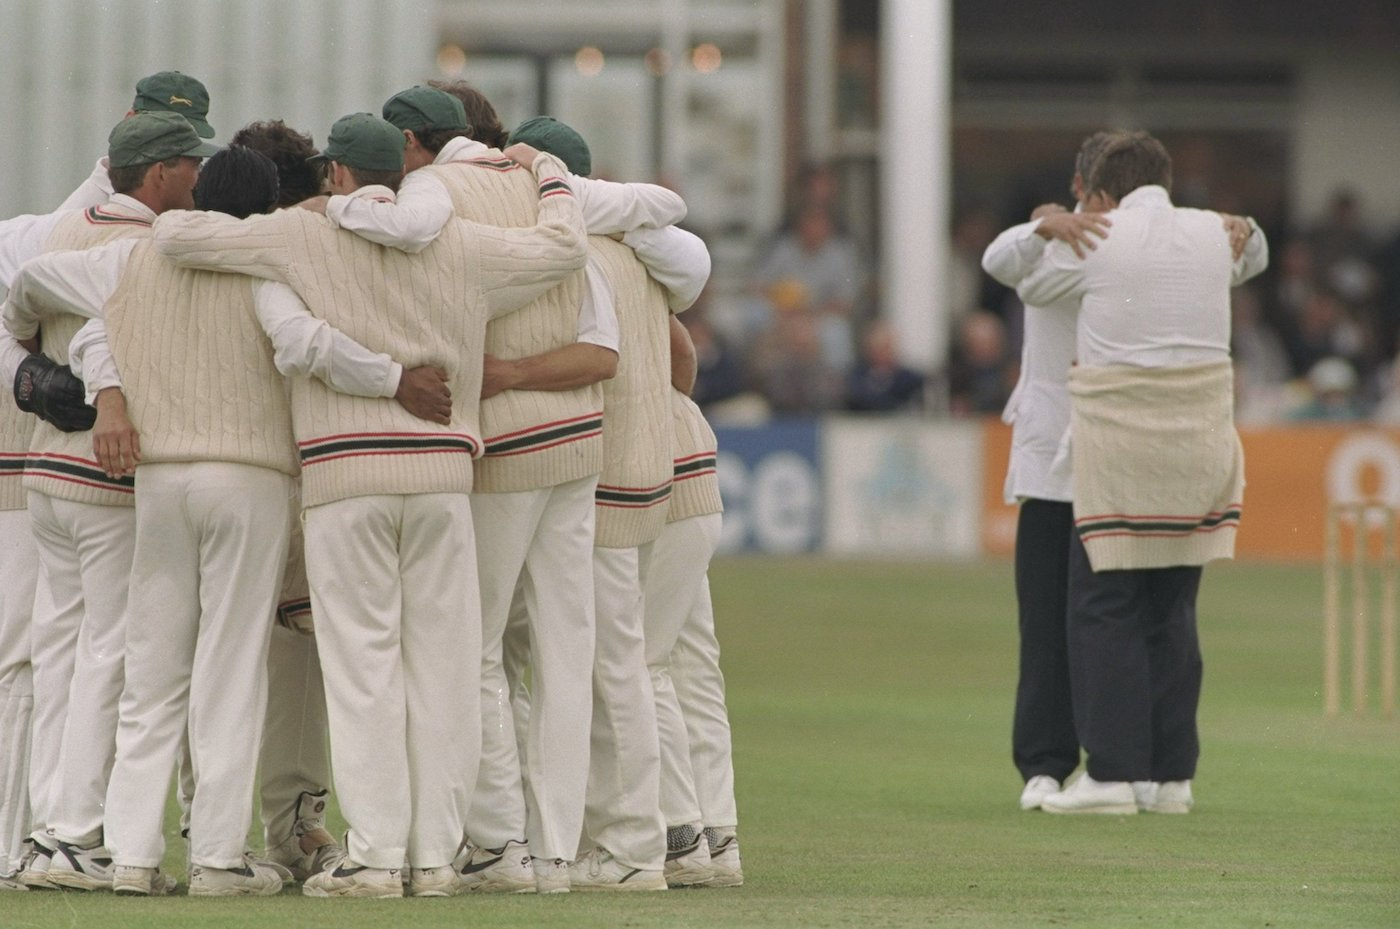 You can forget about this altogether. And whatever the umpires are doing too